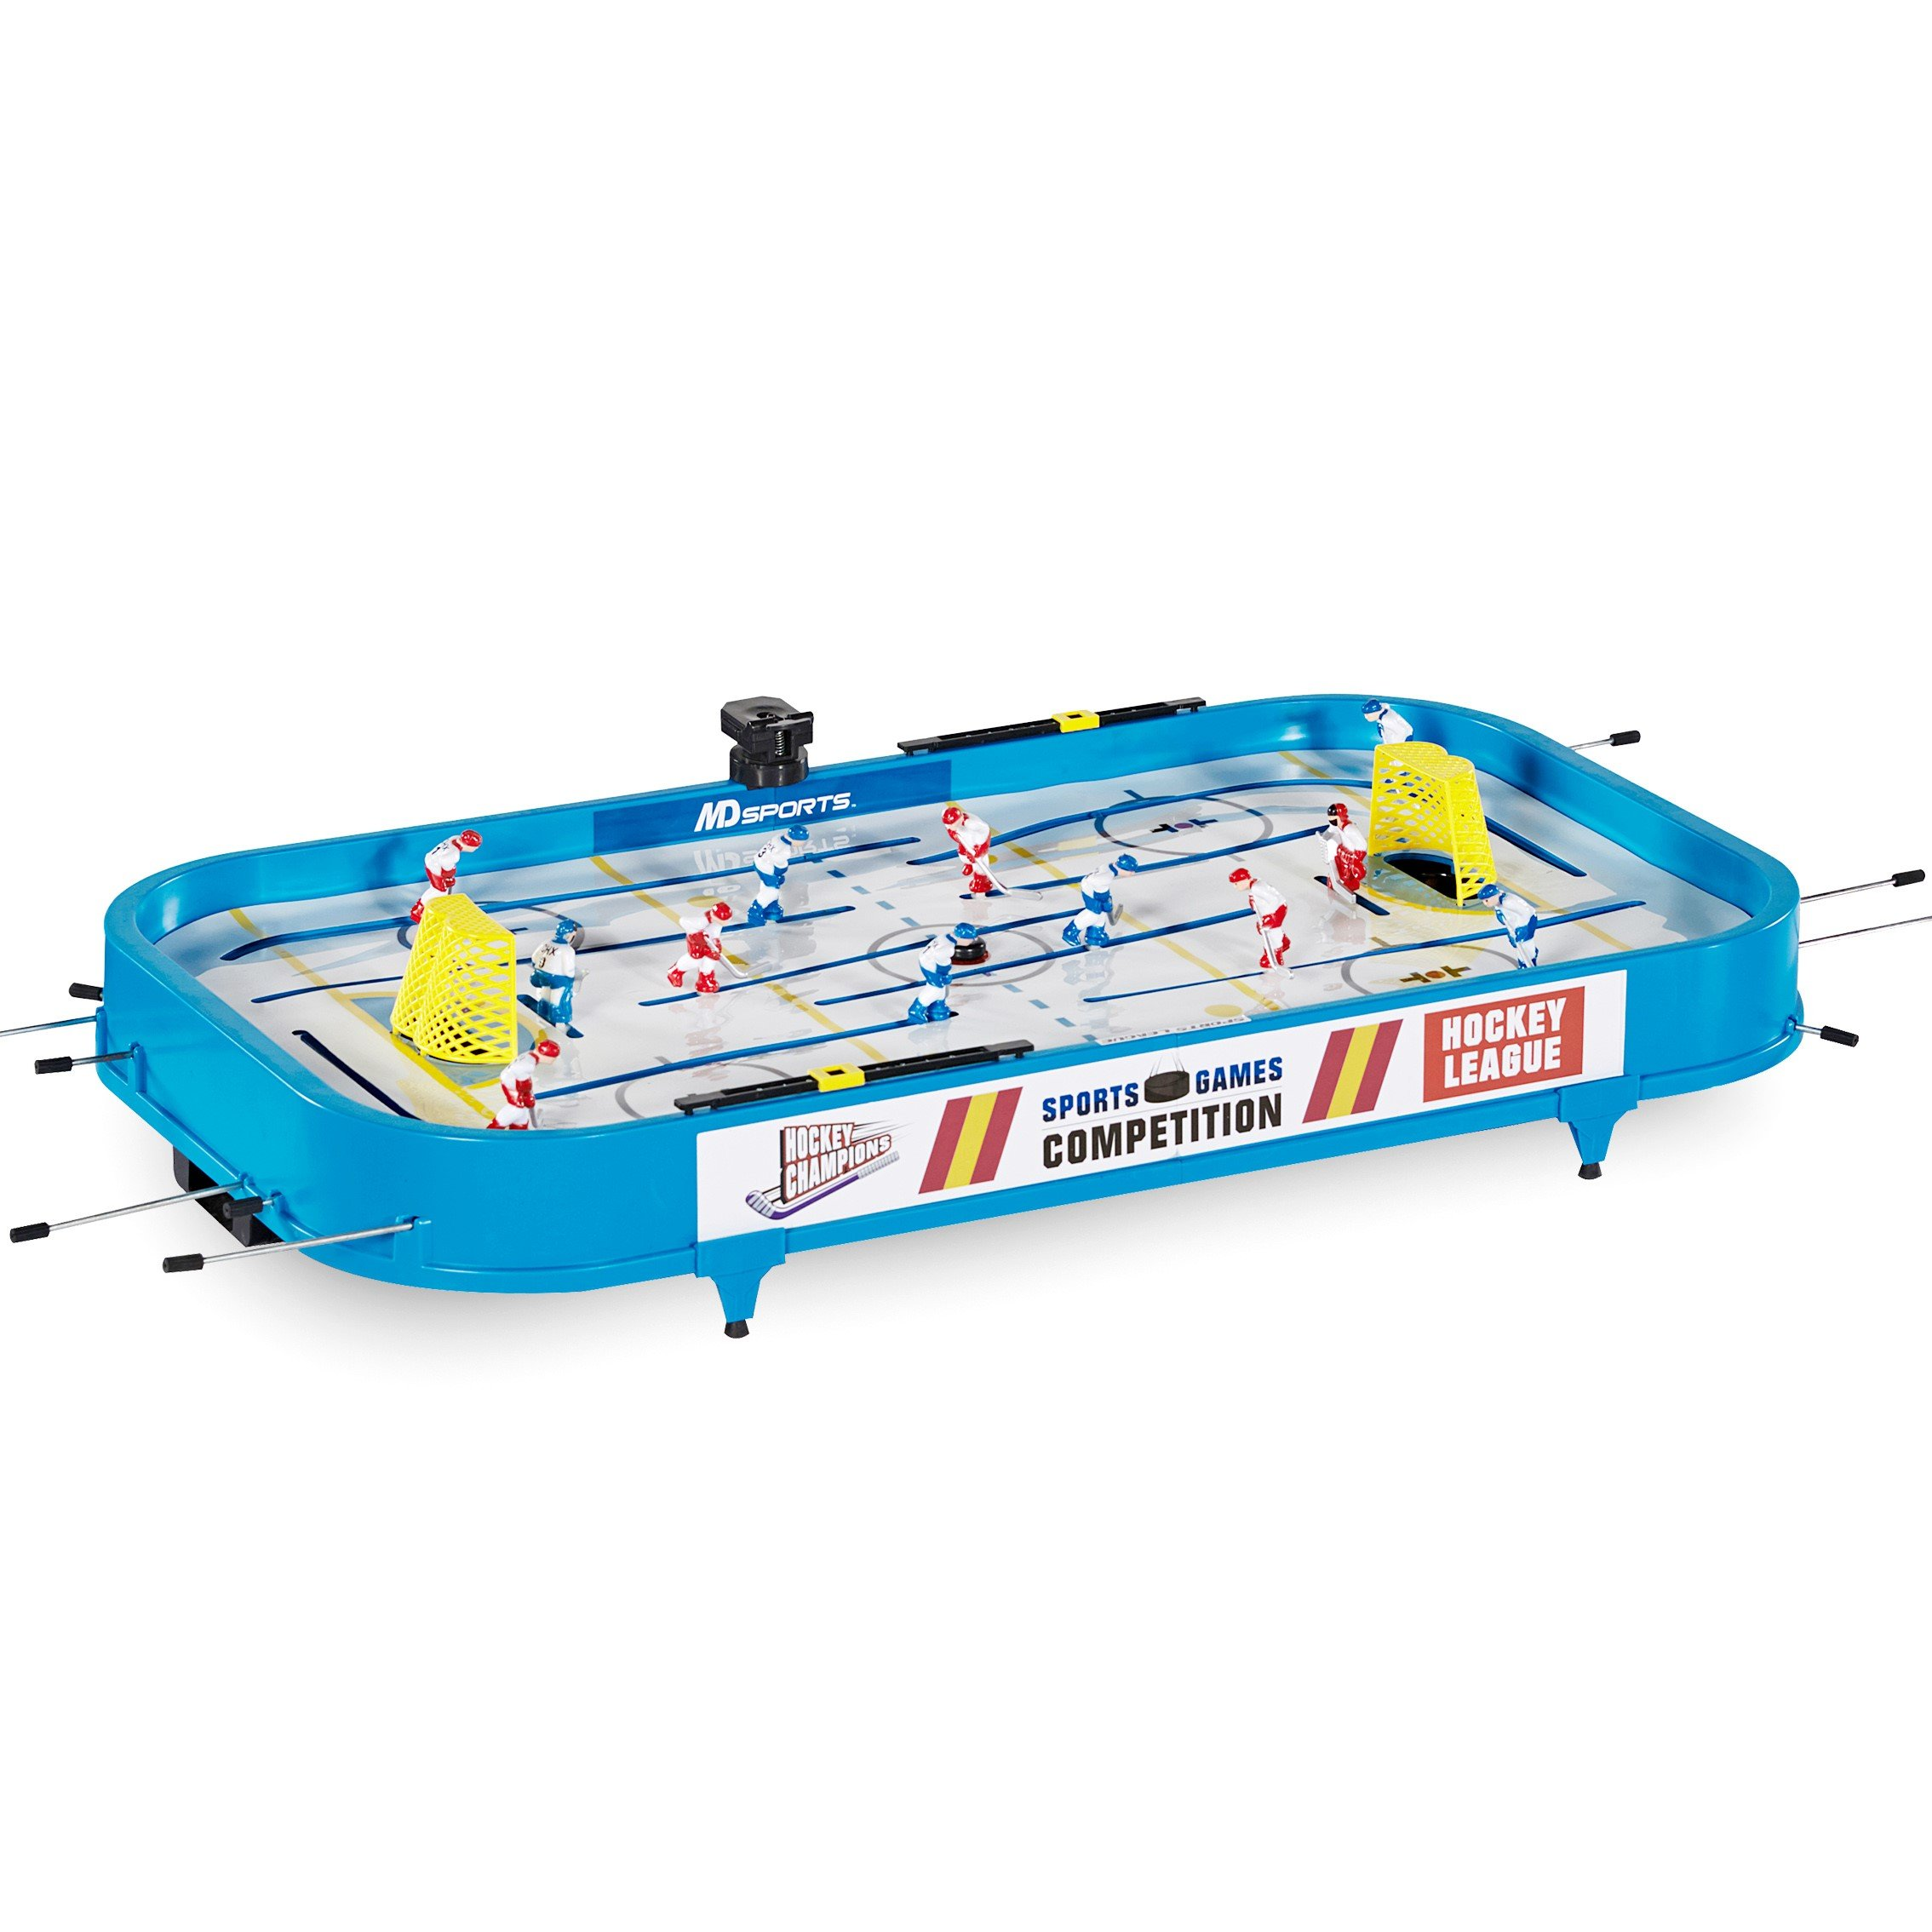 MD Sports Rod Hockey Table Game, 36'', Lightweight Table Top -Stick Hockey with 2 Pucks - Fun, Portable Arcade Games and Accessories for Kids and Adults by MD Sports